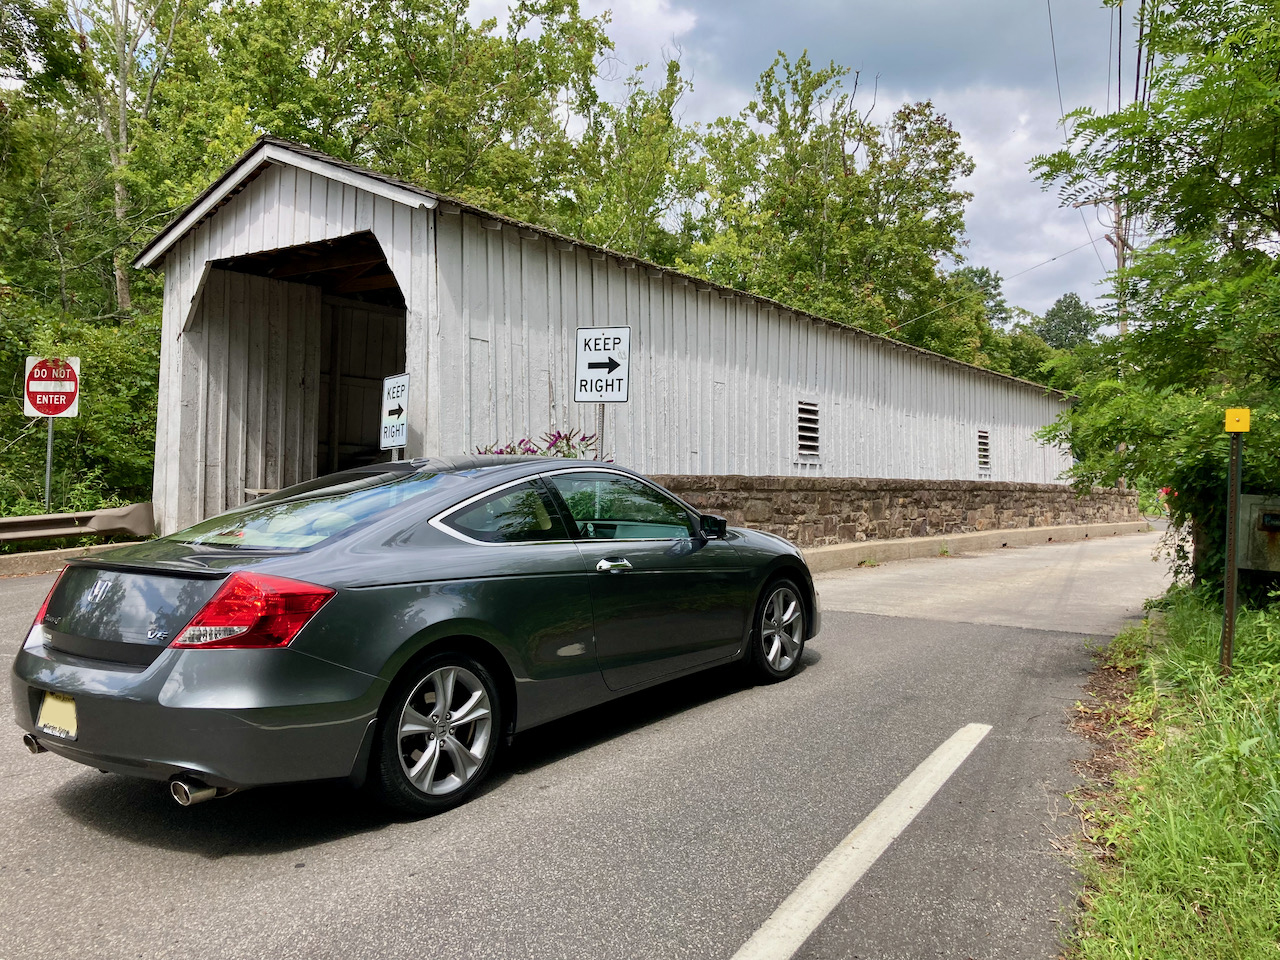 2012 Honda Accord parked in front of Green Sergeant Covered Bridge.